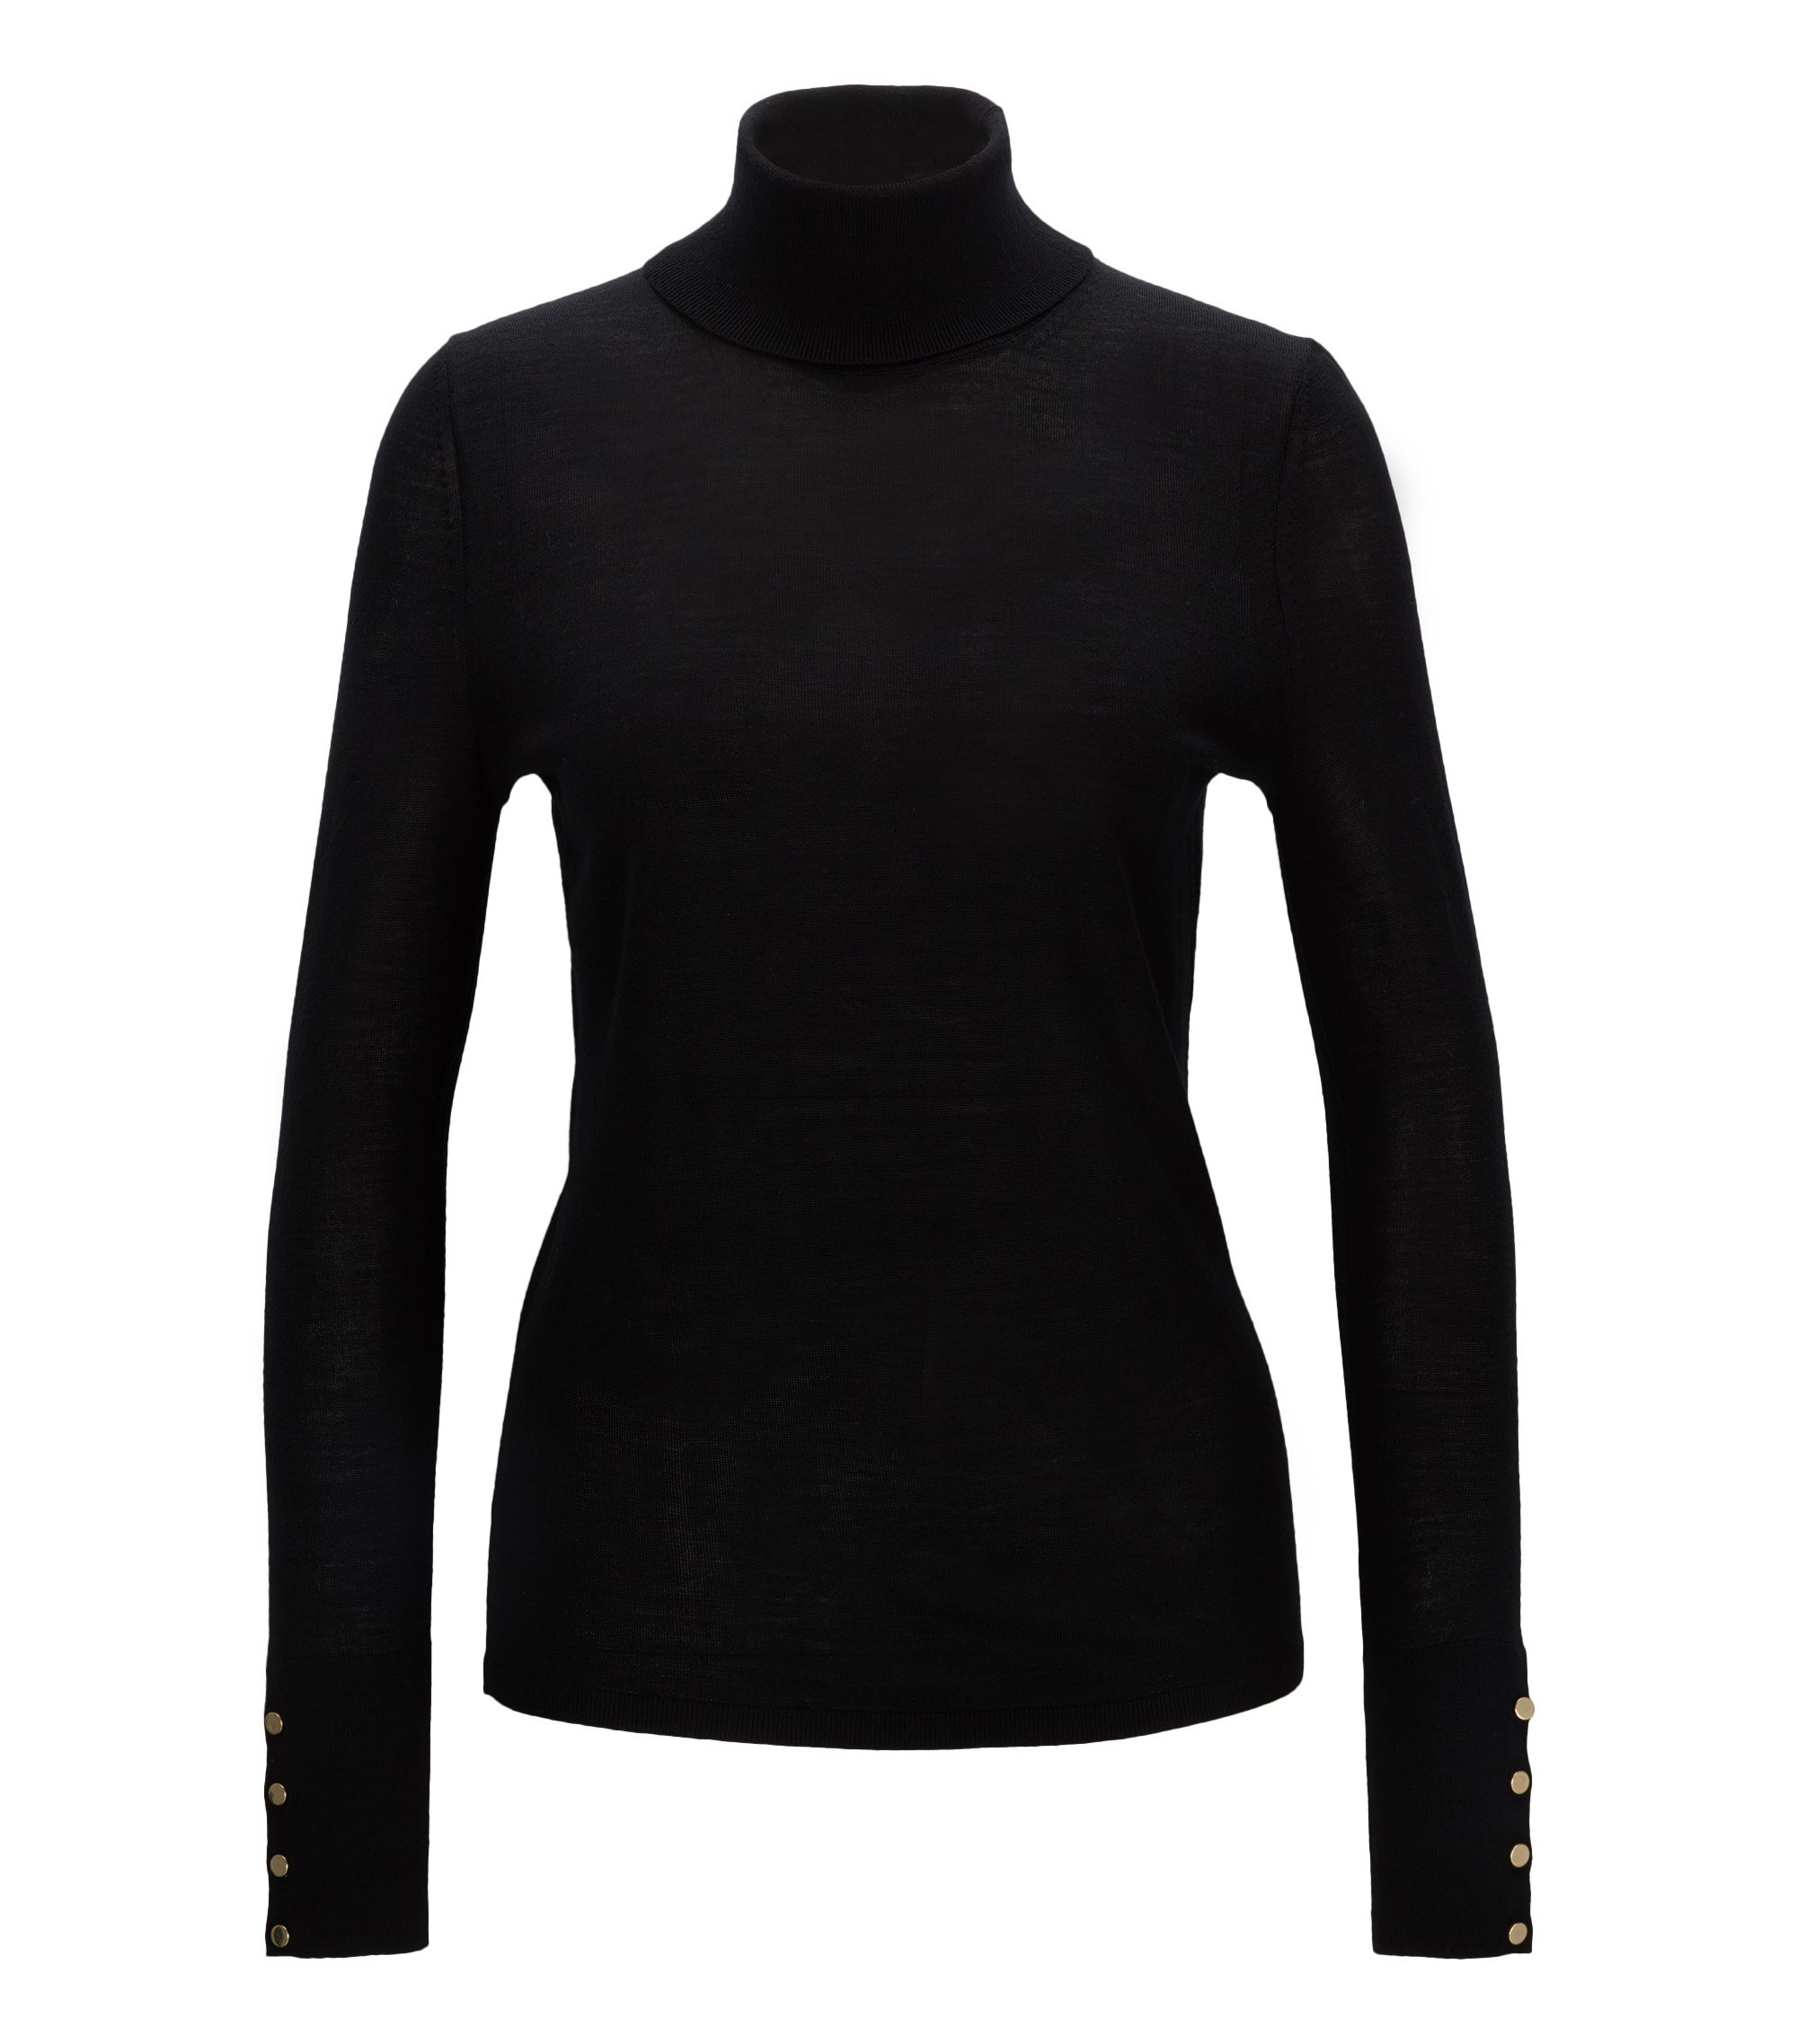 Virgin Wool Turtleneck Sweater | Farrella, Black